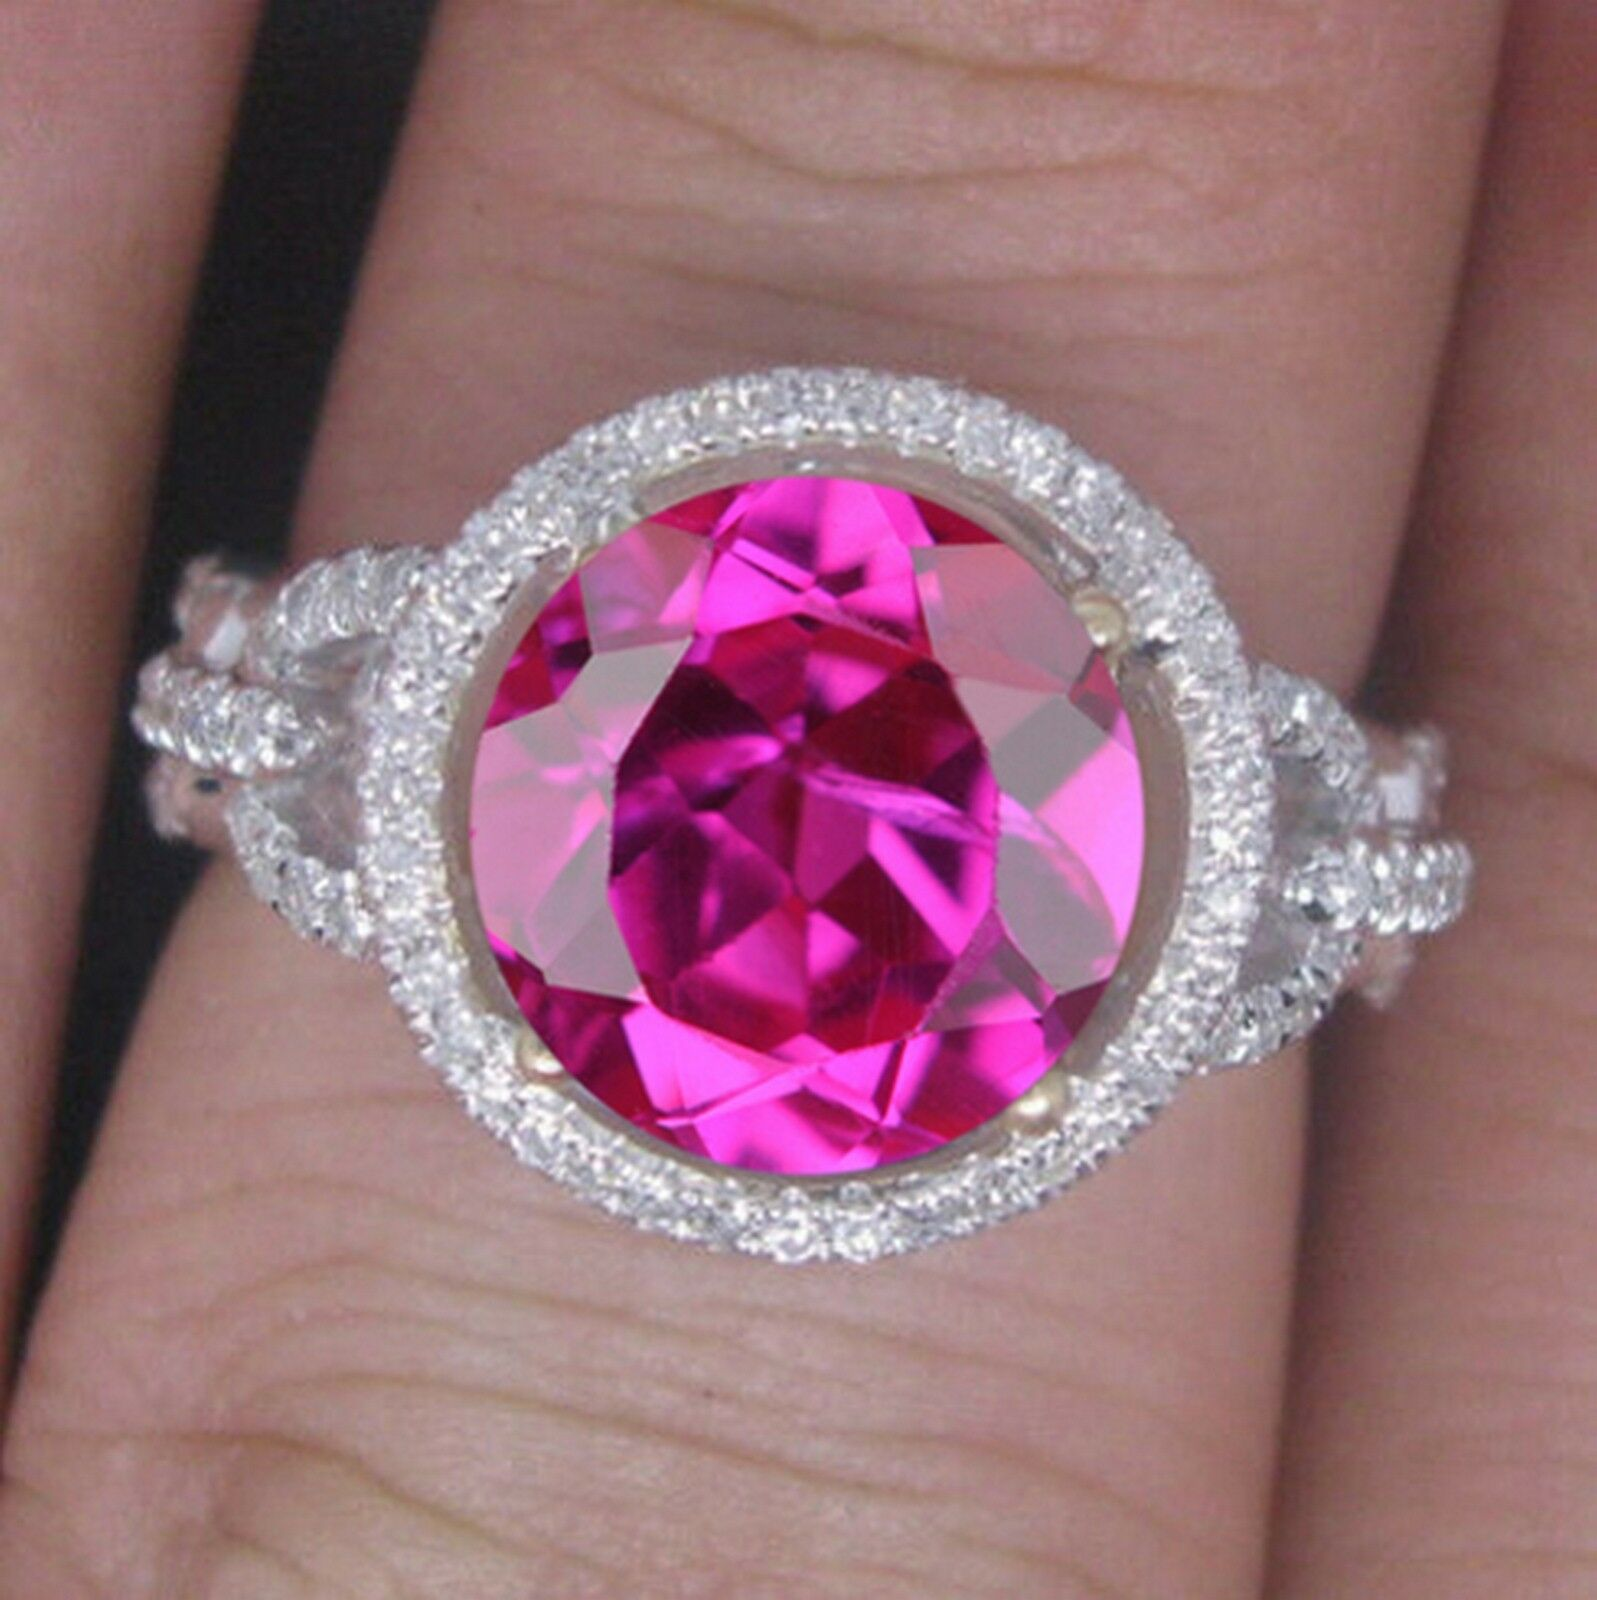 14KT White gold 1.75 Carat Natural Pink Tourmaline EGL Certified Diamond Ring